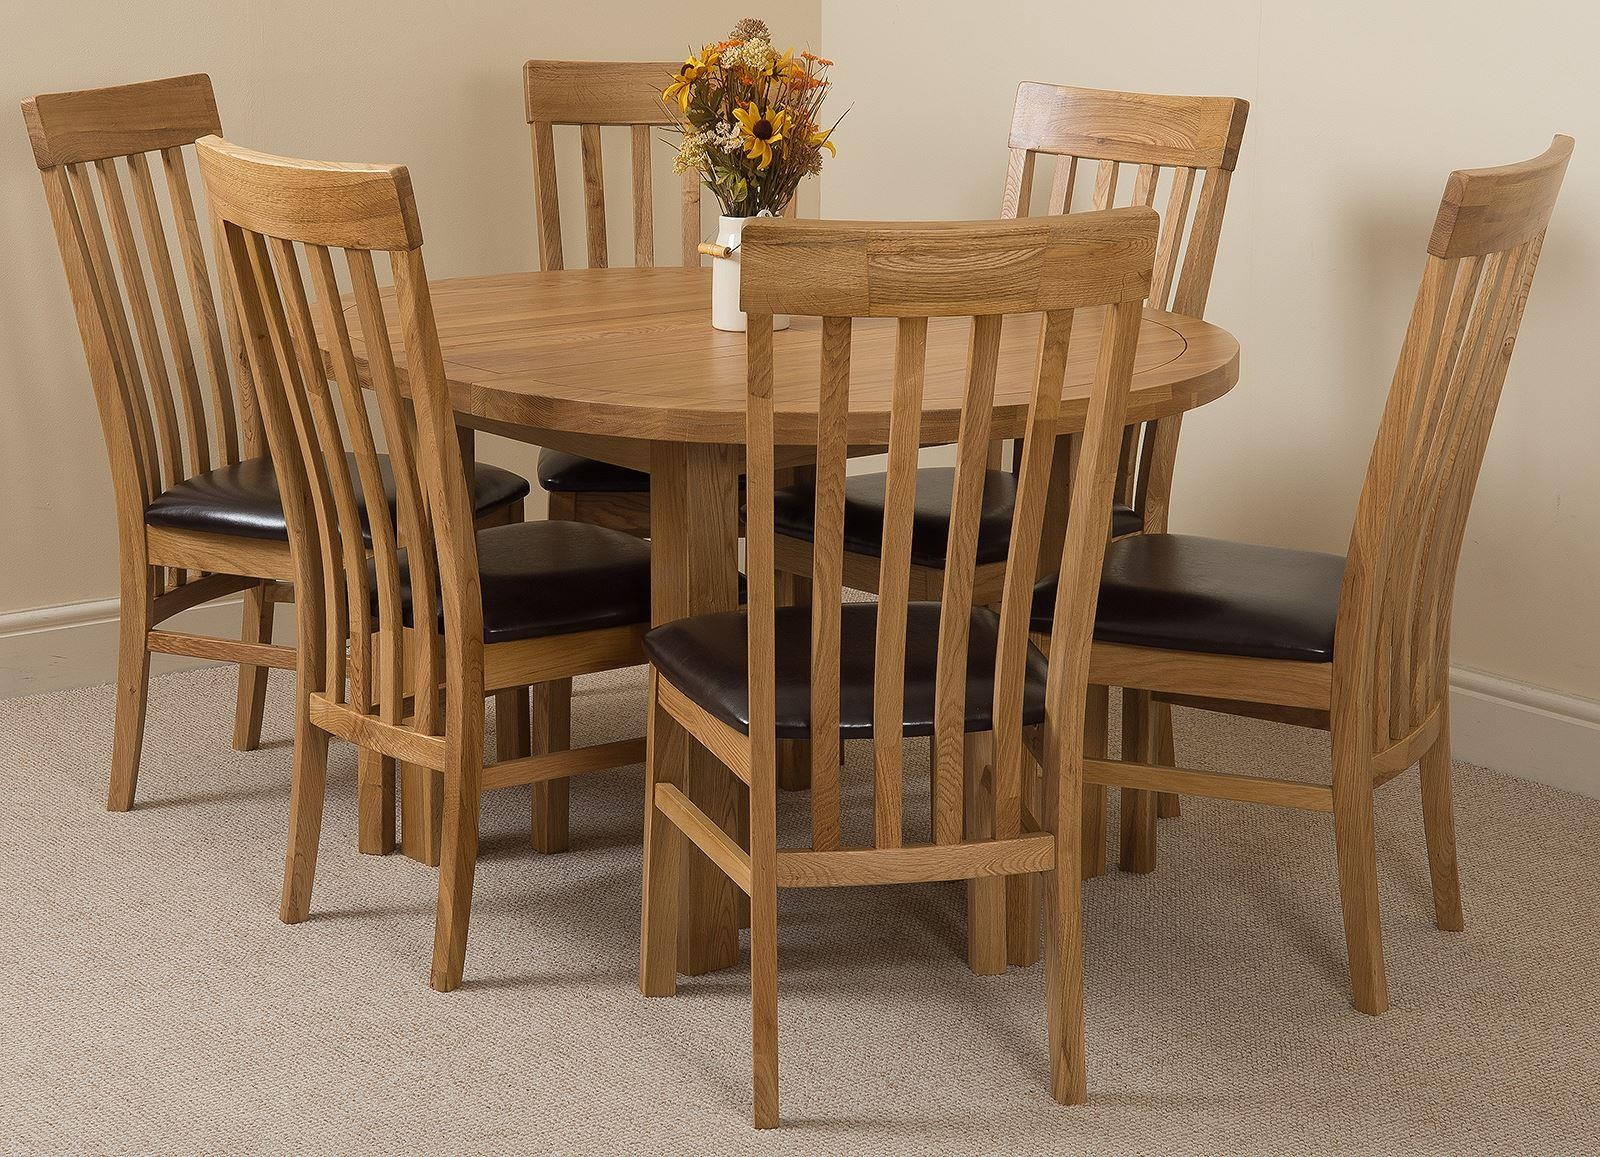 Edmonton Solid Oak Extending Oval Dining Table With 6 Harvard Chairs Light And Brown Leather